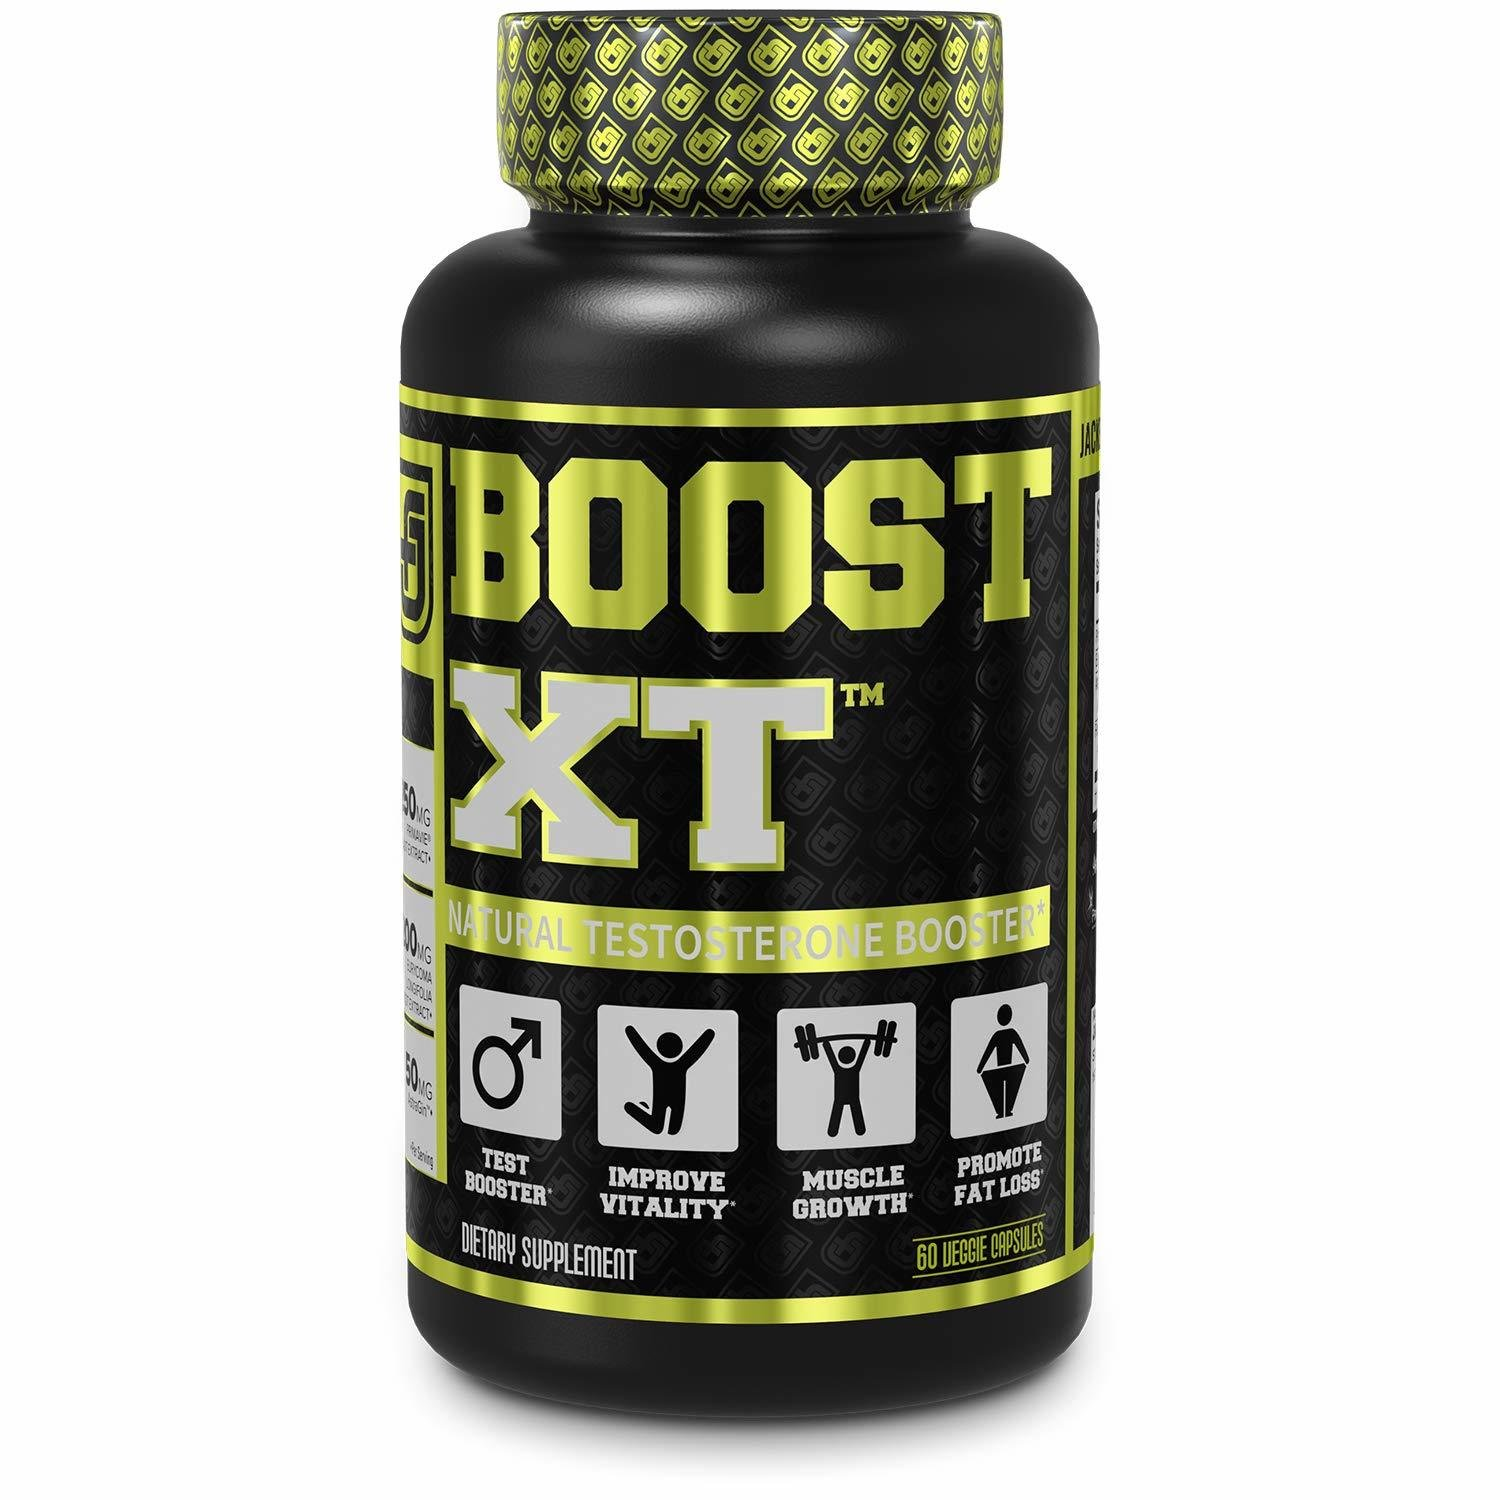 Jacked Factory Boost-XT Testosterone Booster for Men - Boost Energy, Strength, Fat Loss, Libido - Natural Test Booster & Muscle Builder 60caps